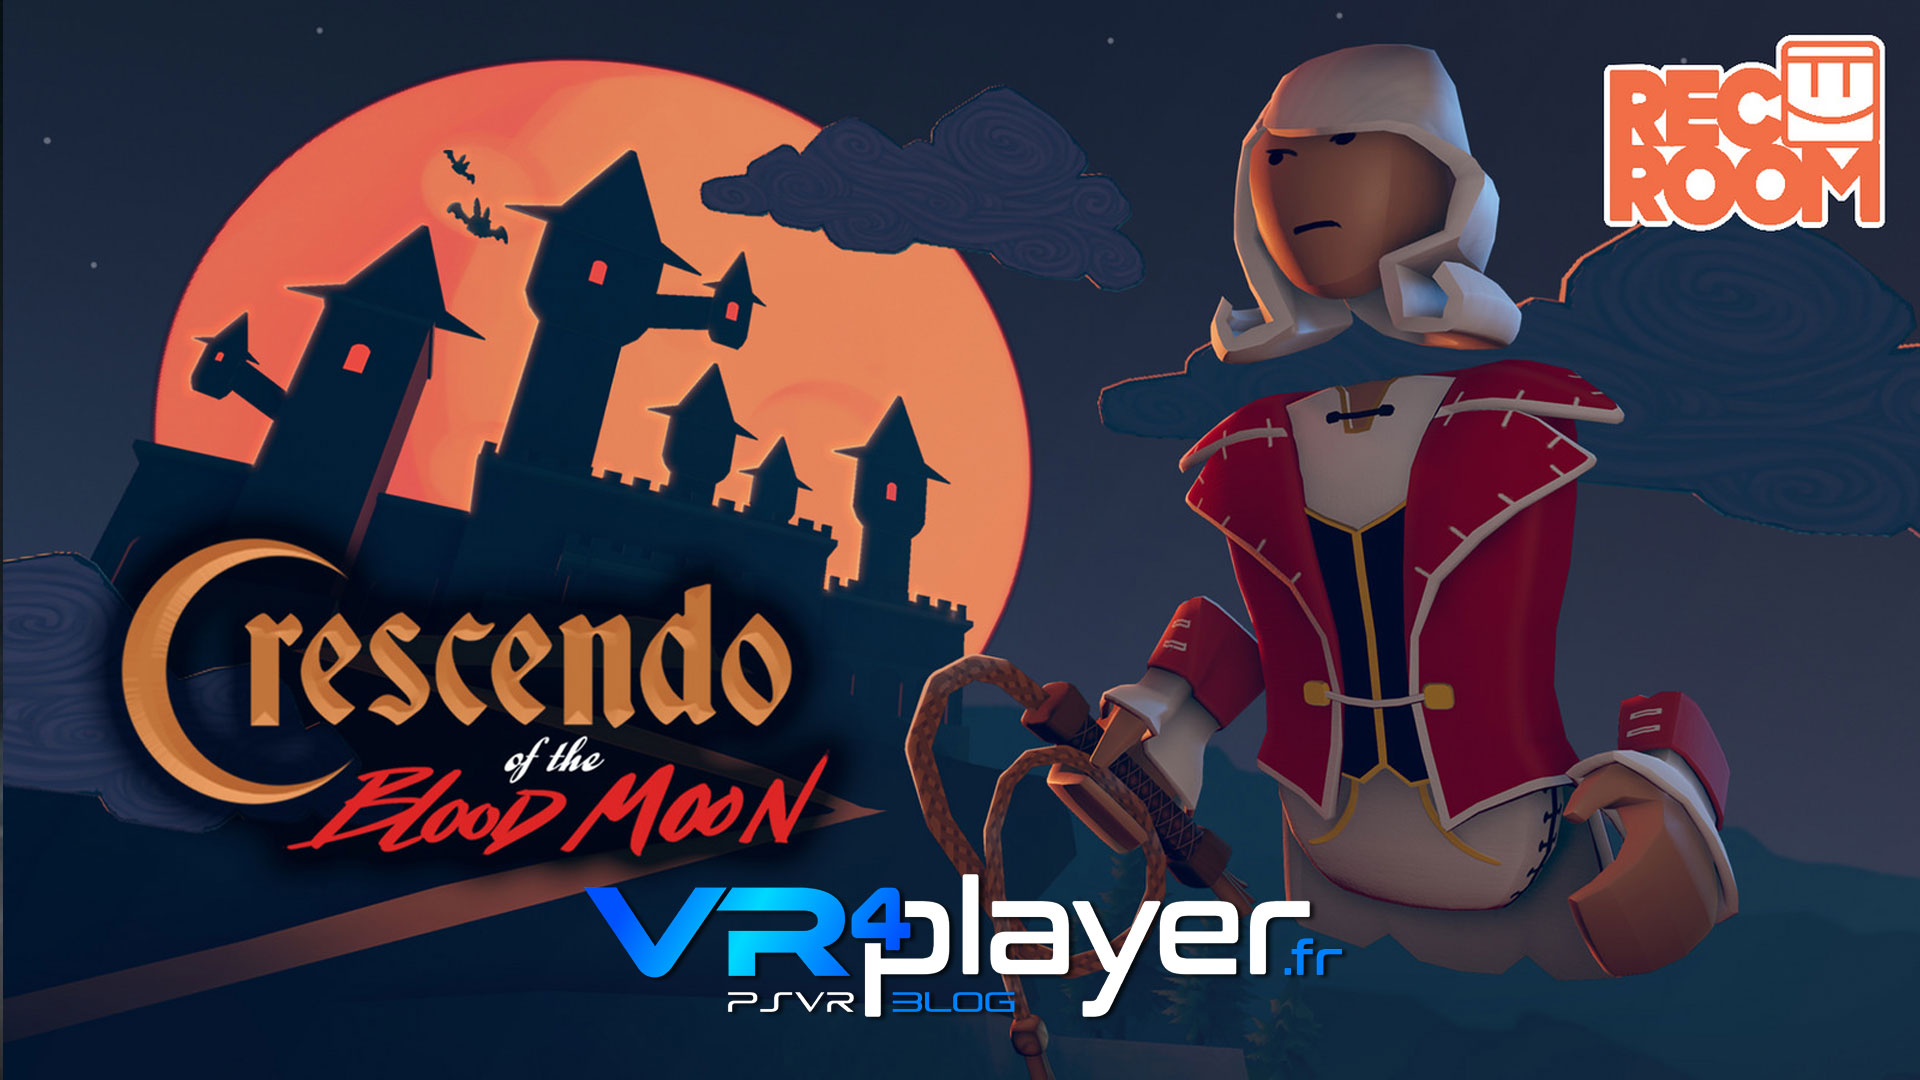 REC ROOM Crescendo of the Blood Moon sur PSVR - vr4player.fr